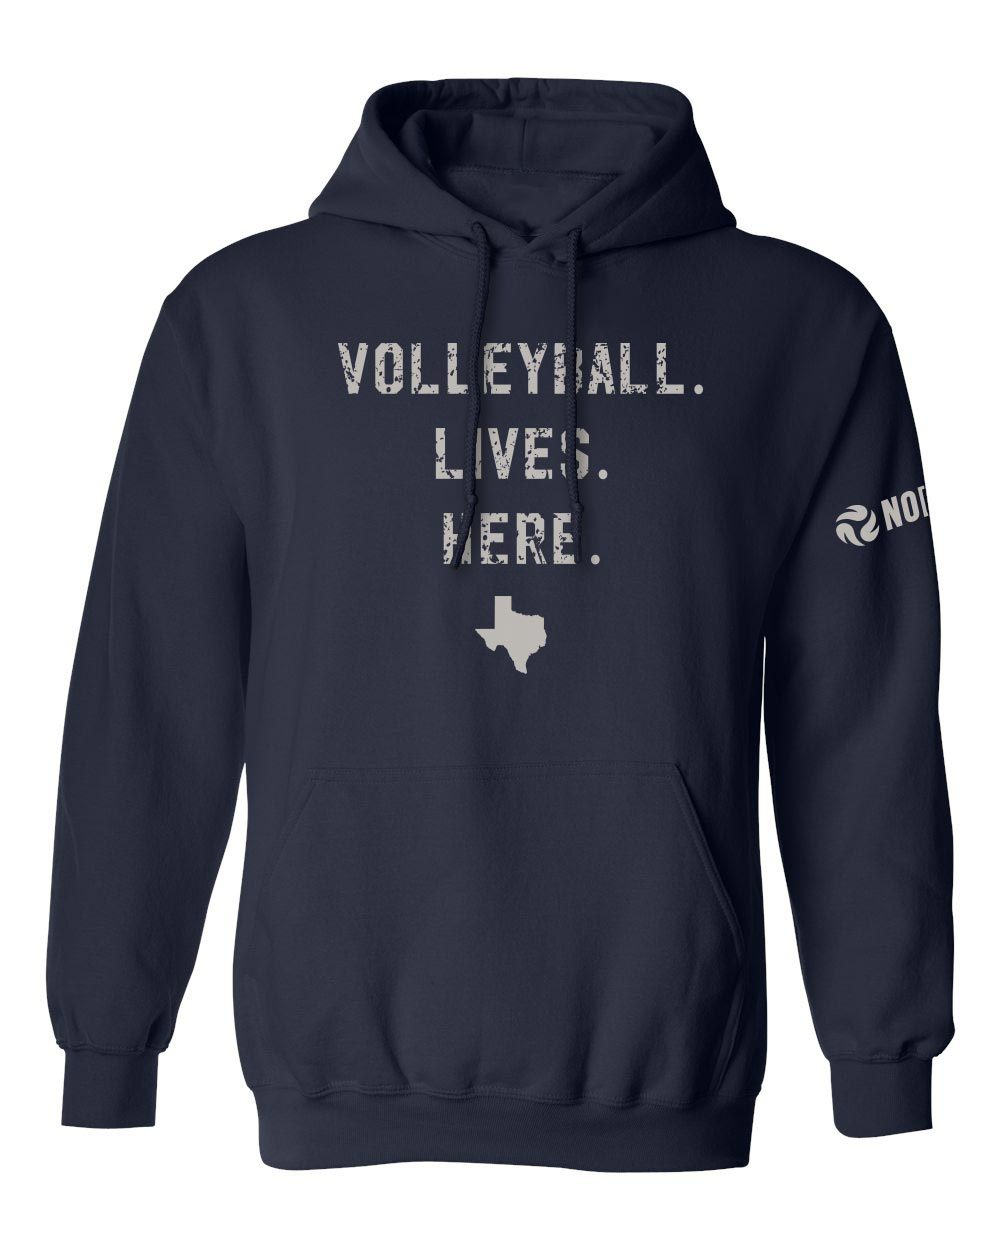 Volleyball Lives Here - TX Hooded Sweatshirt - No Dinx Volleyball